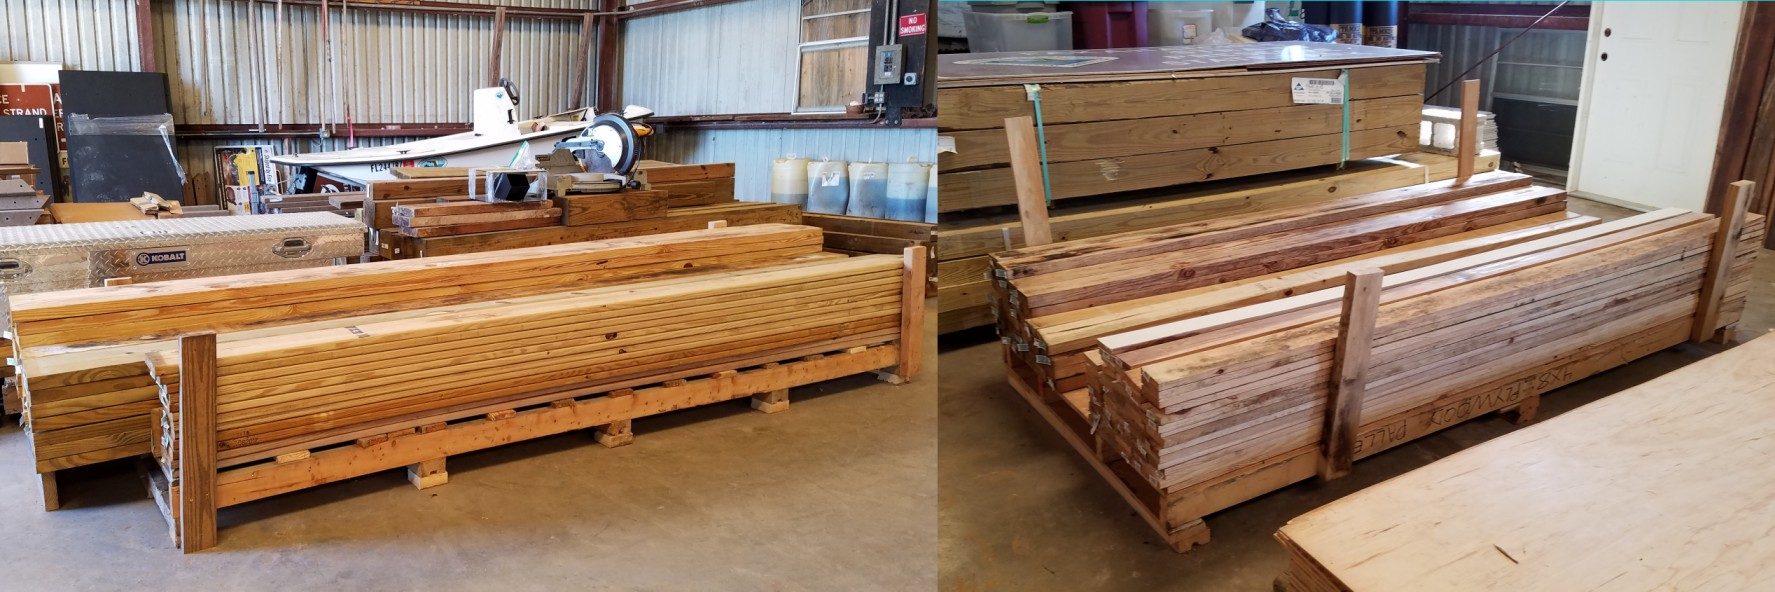 Harman Building Restacked Lumber